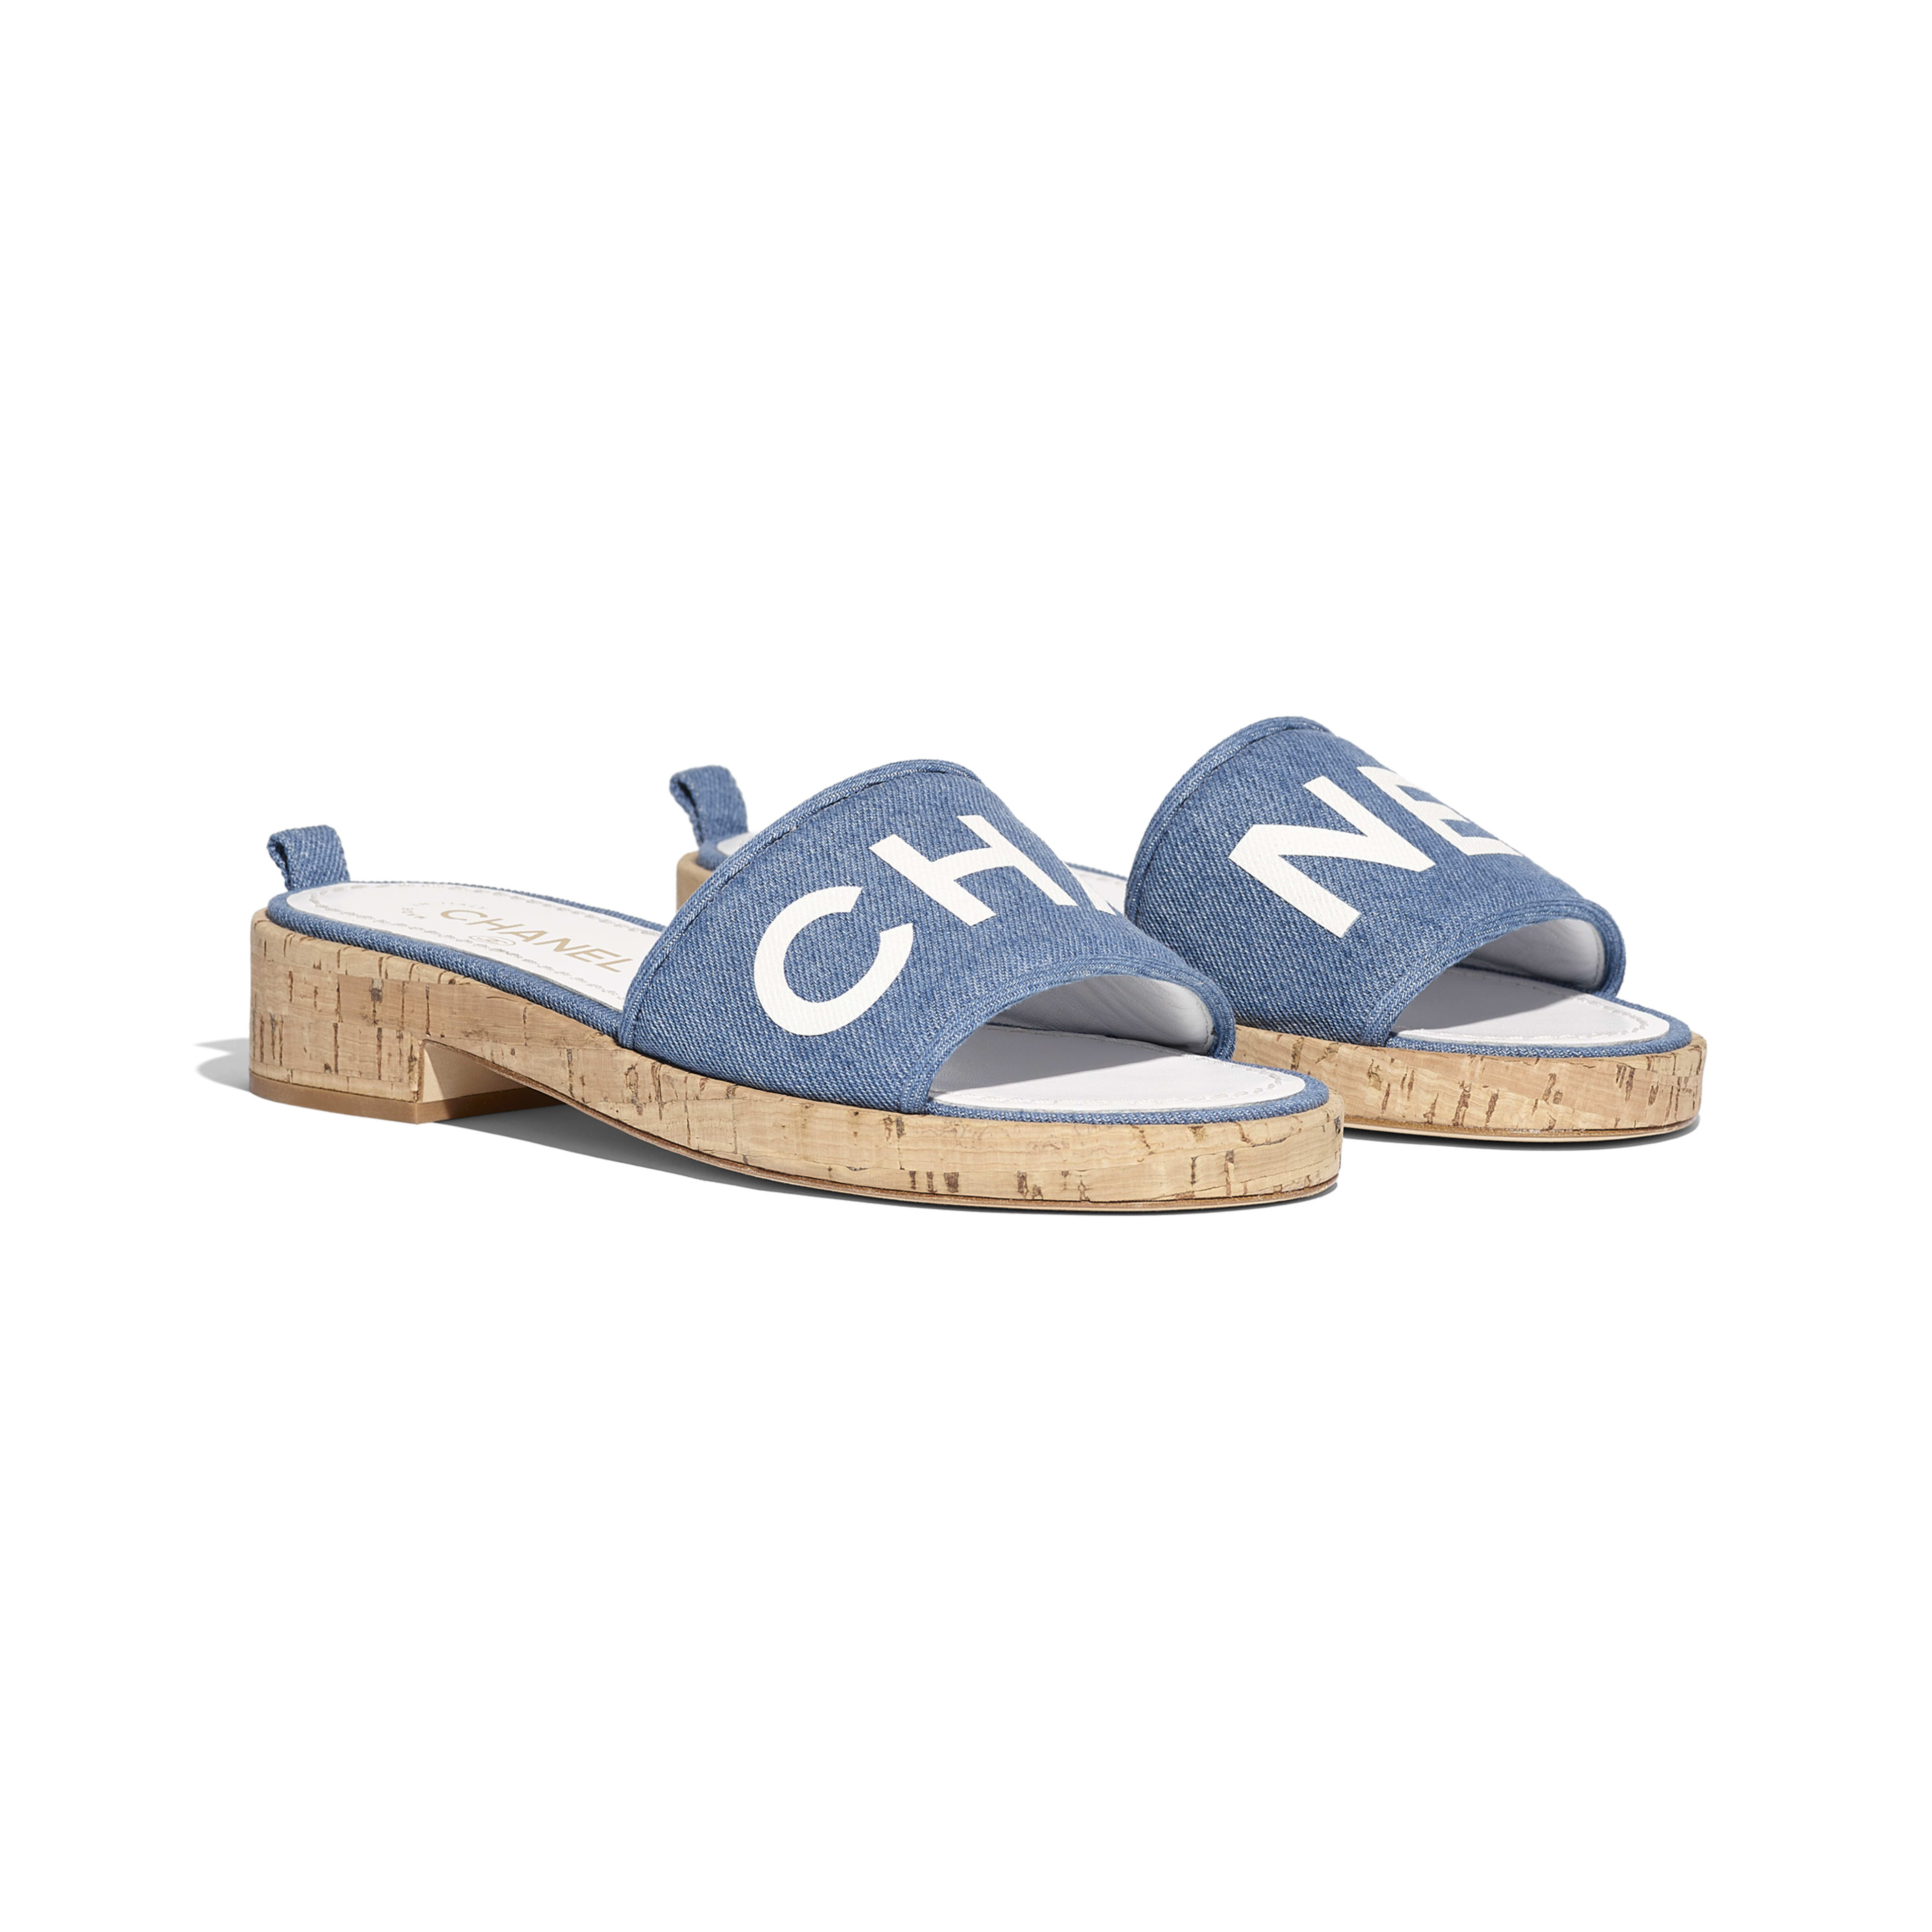 Mules - Blue & White - Denim & Lambskin - Alternative view - see full sized version